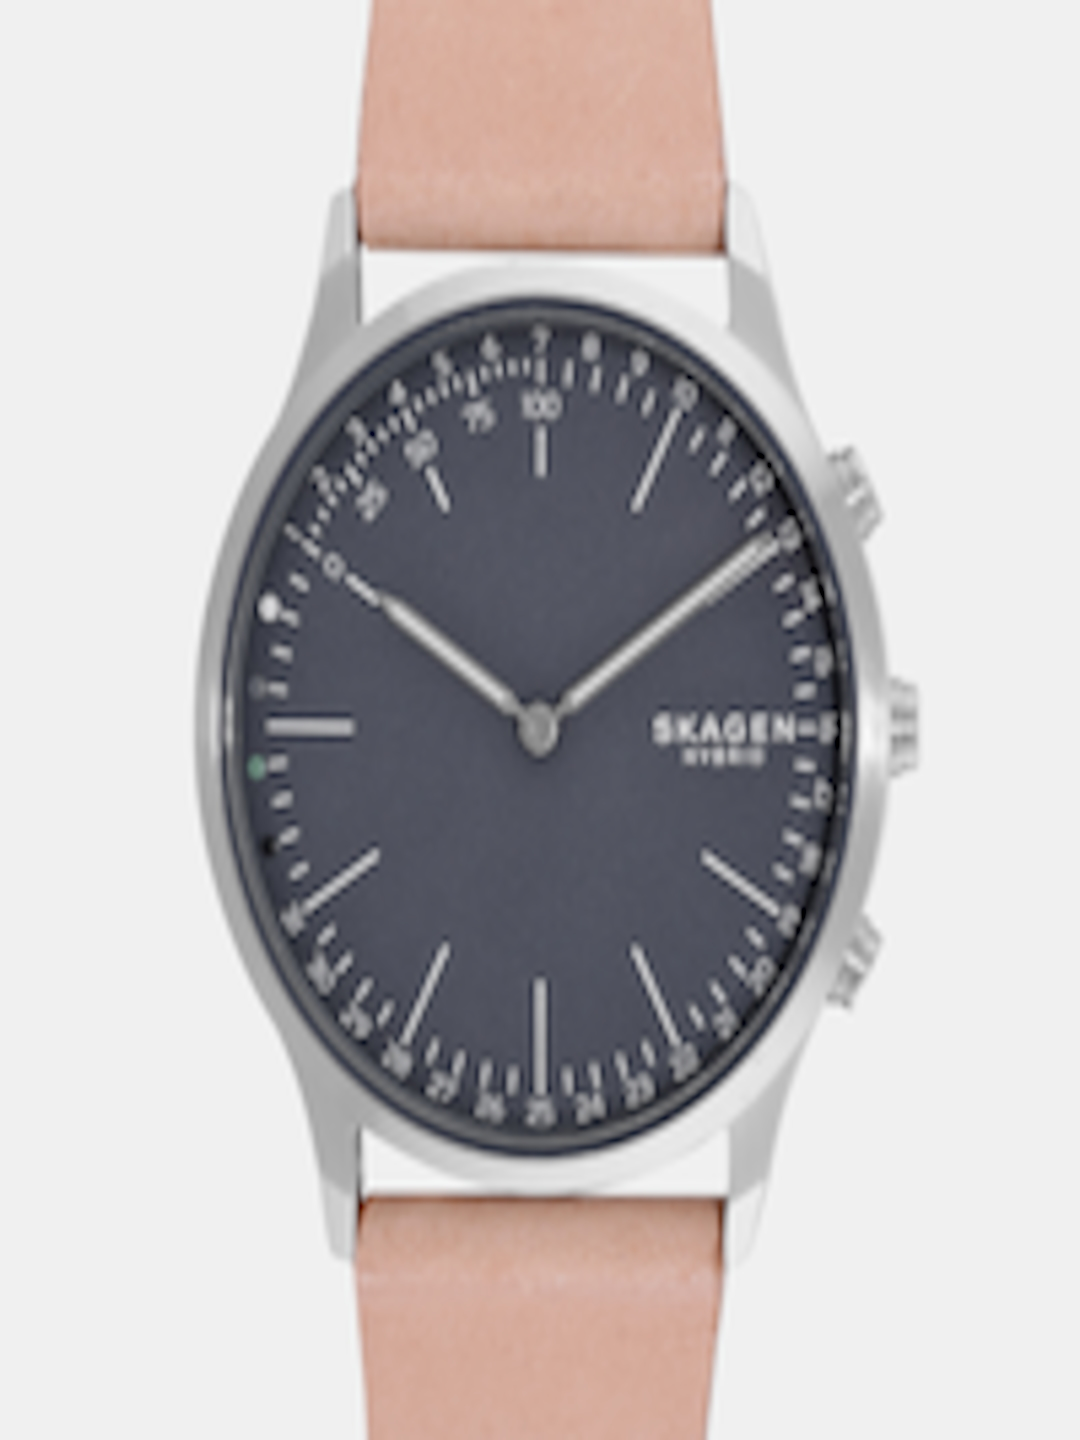 Buy Skagen Men Grey Hybrid Watch Skt1200 Smart Watches For Men